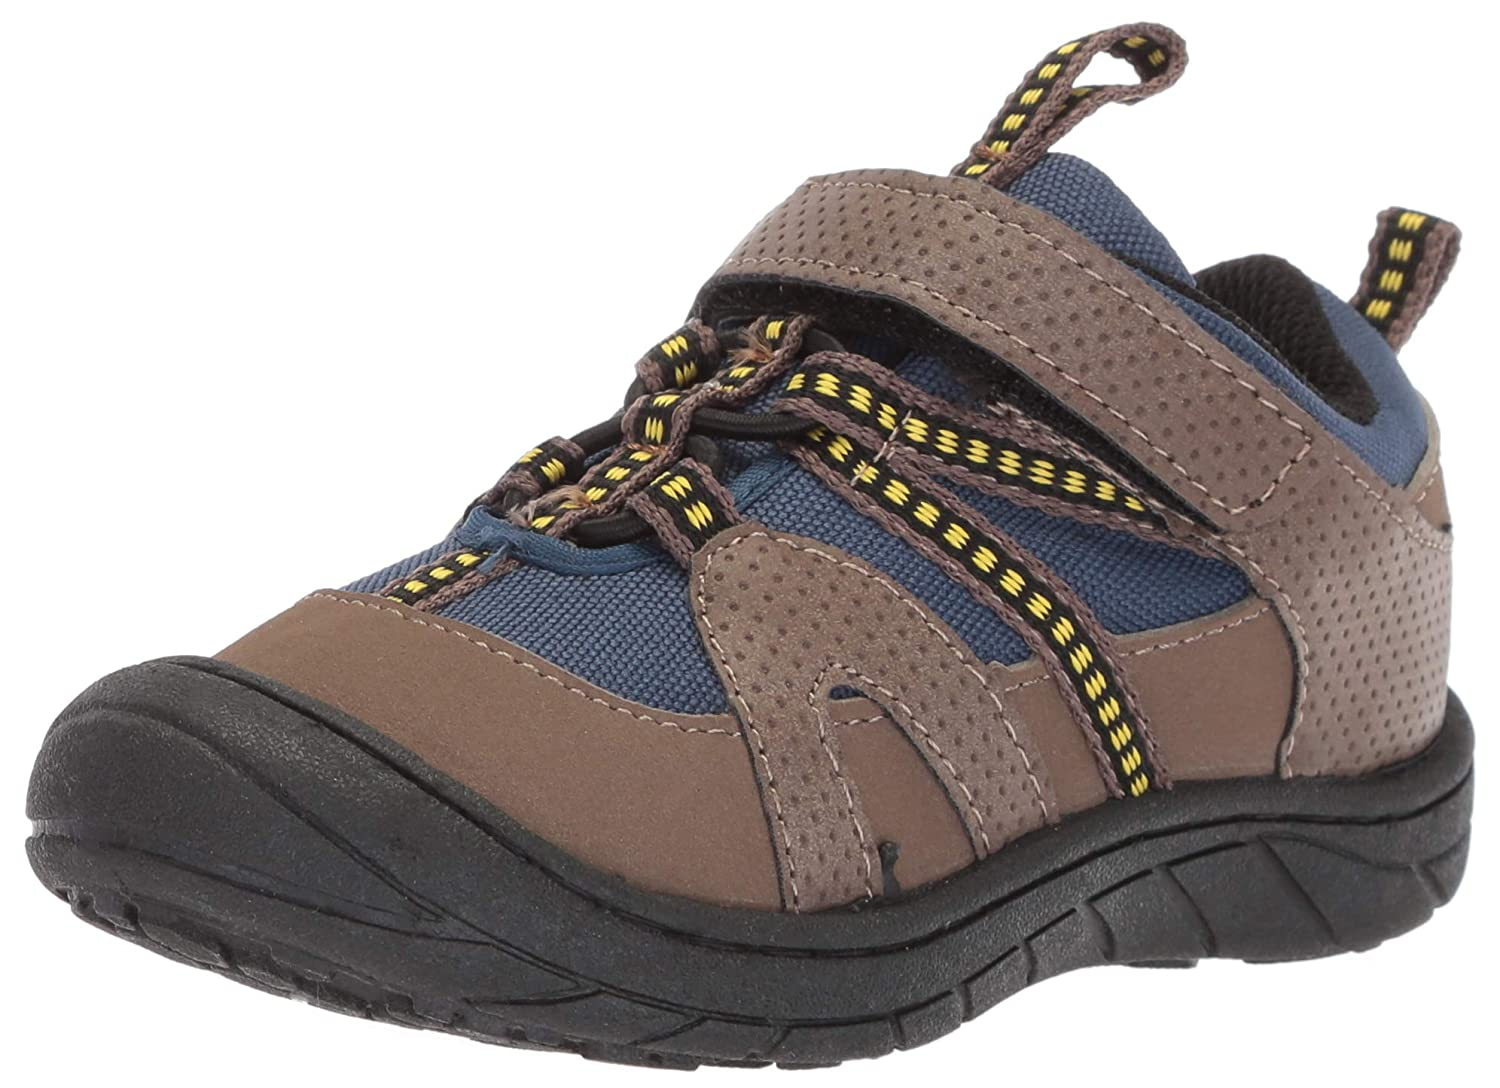 Northside Corvallis Comfort Flex Outdoor Sneaker Shoe Toddler//Little Kid CORVALIS-K